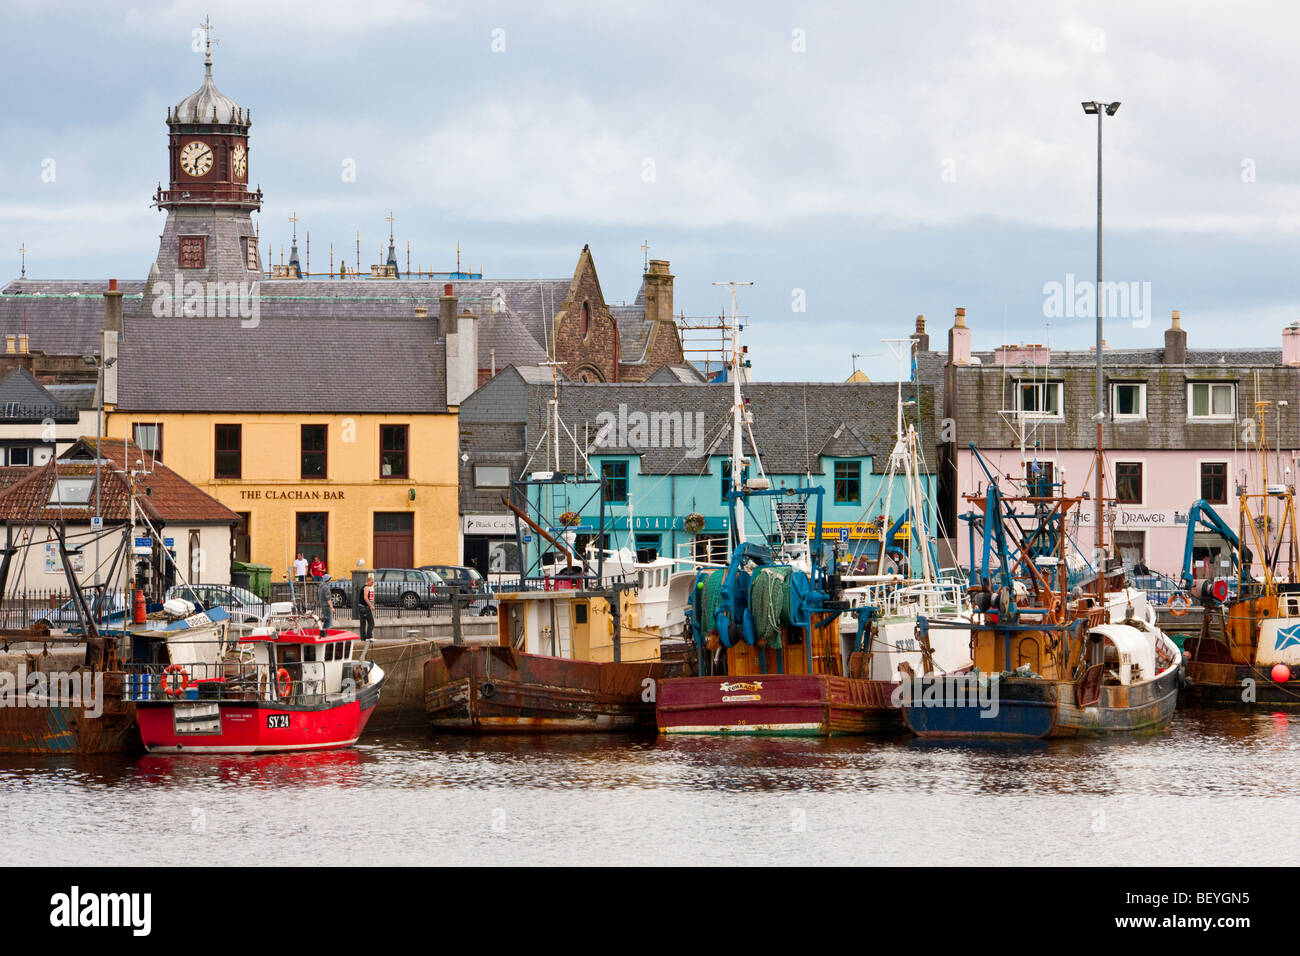 Fishing boats in the natural harbour of Stornoway on the Isle of Lewis, Scotland - Stock Image